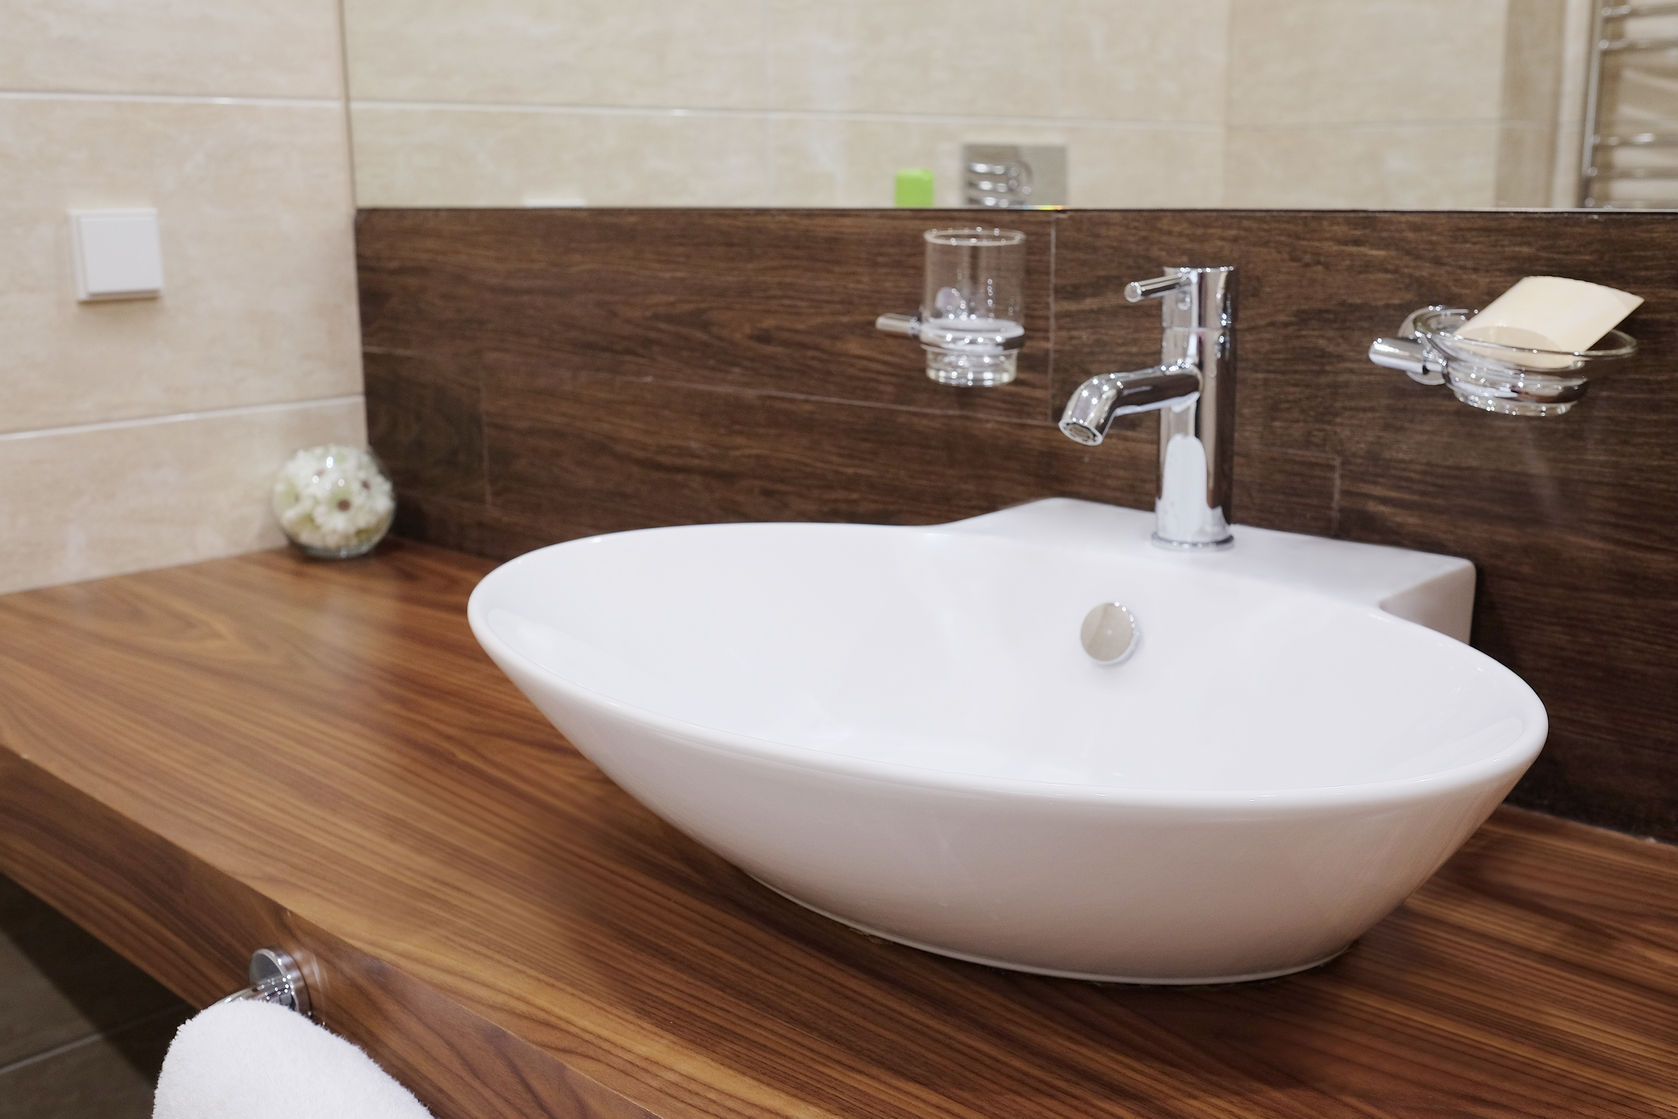 Designer Thoughts Bathroom Style Mistakes To Avoid - Bathroom sink drain installation mistakes to avoid